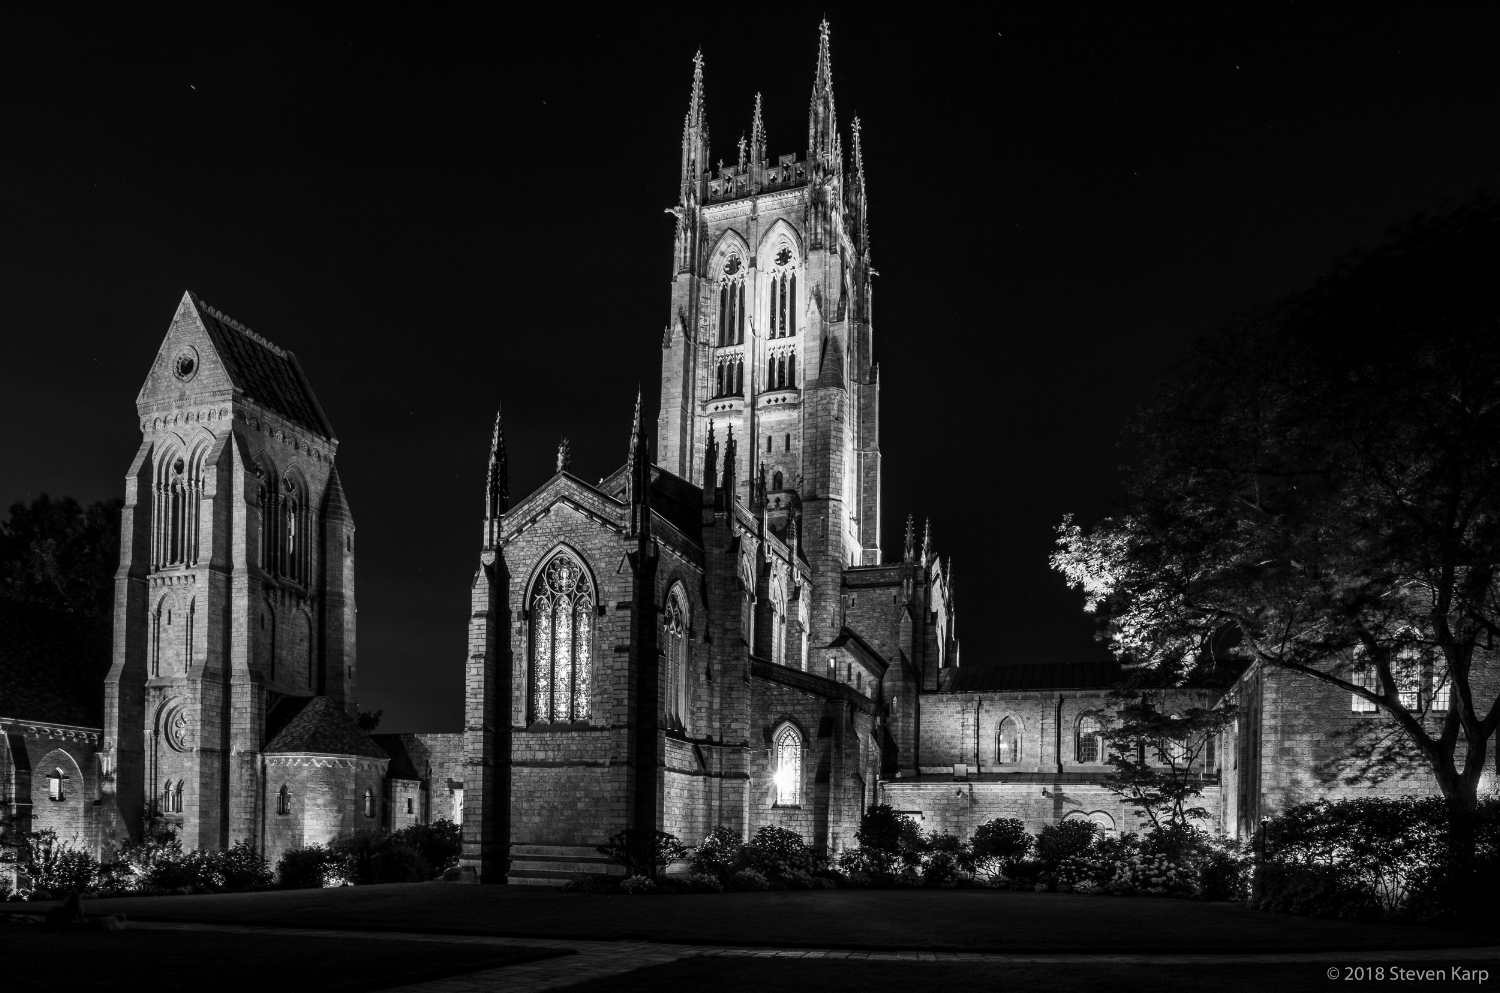 cathedral_front_straightened-6301.jpg